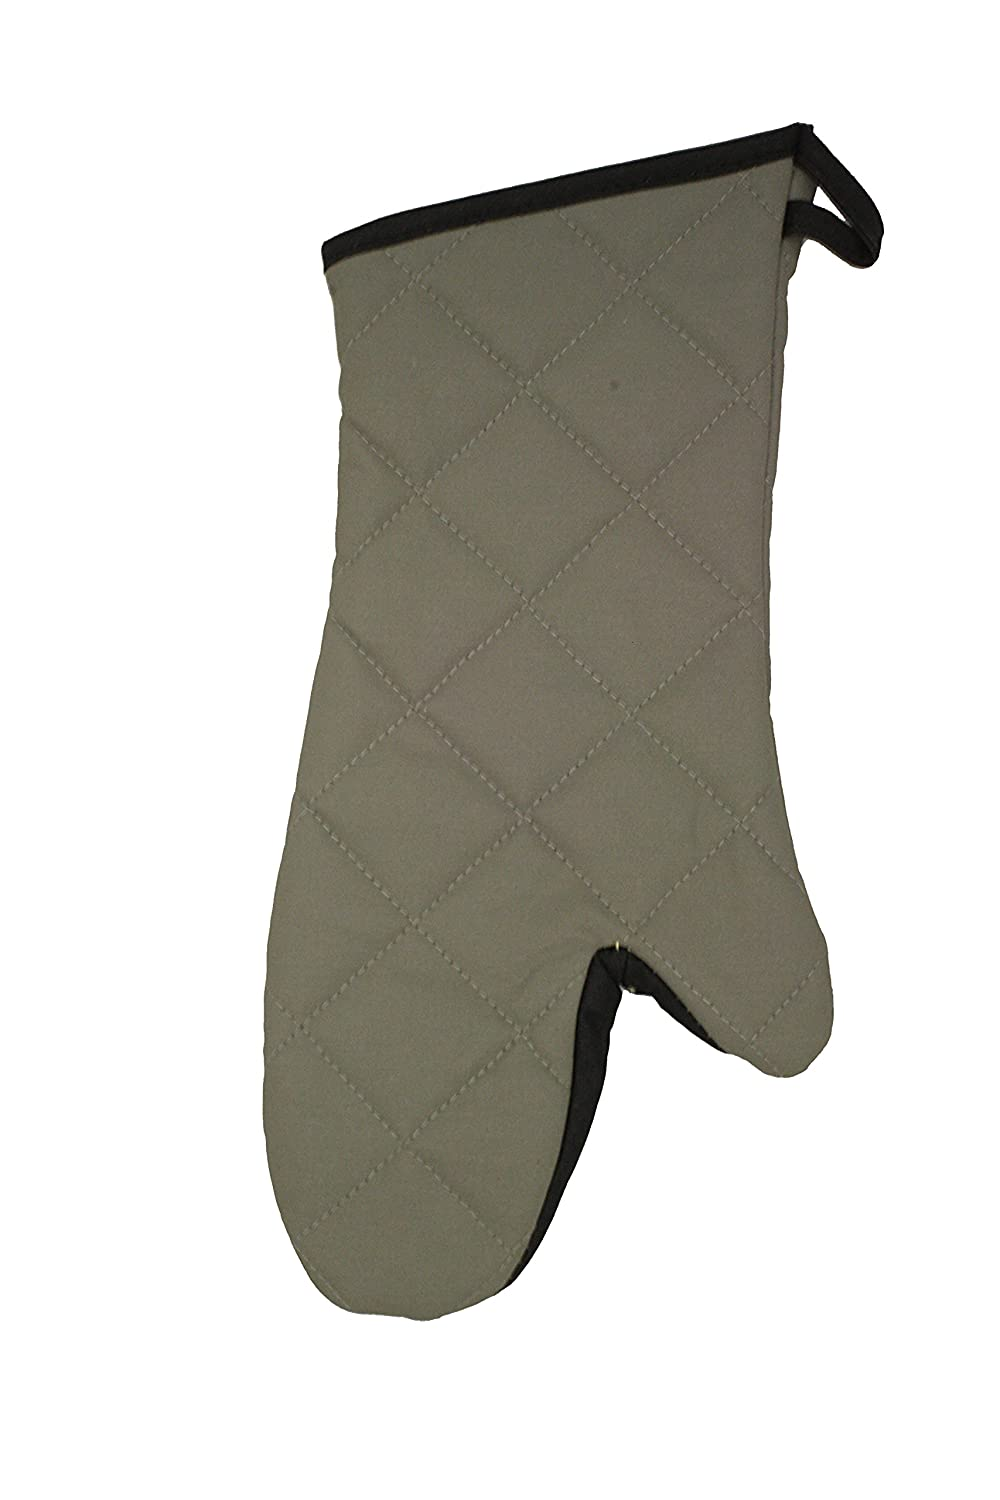 """Ritz CL2PX27BETF Flame-Resistant Pyrotex Oven Mitt, 17"""", Beige (Pack of 12)"""